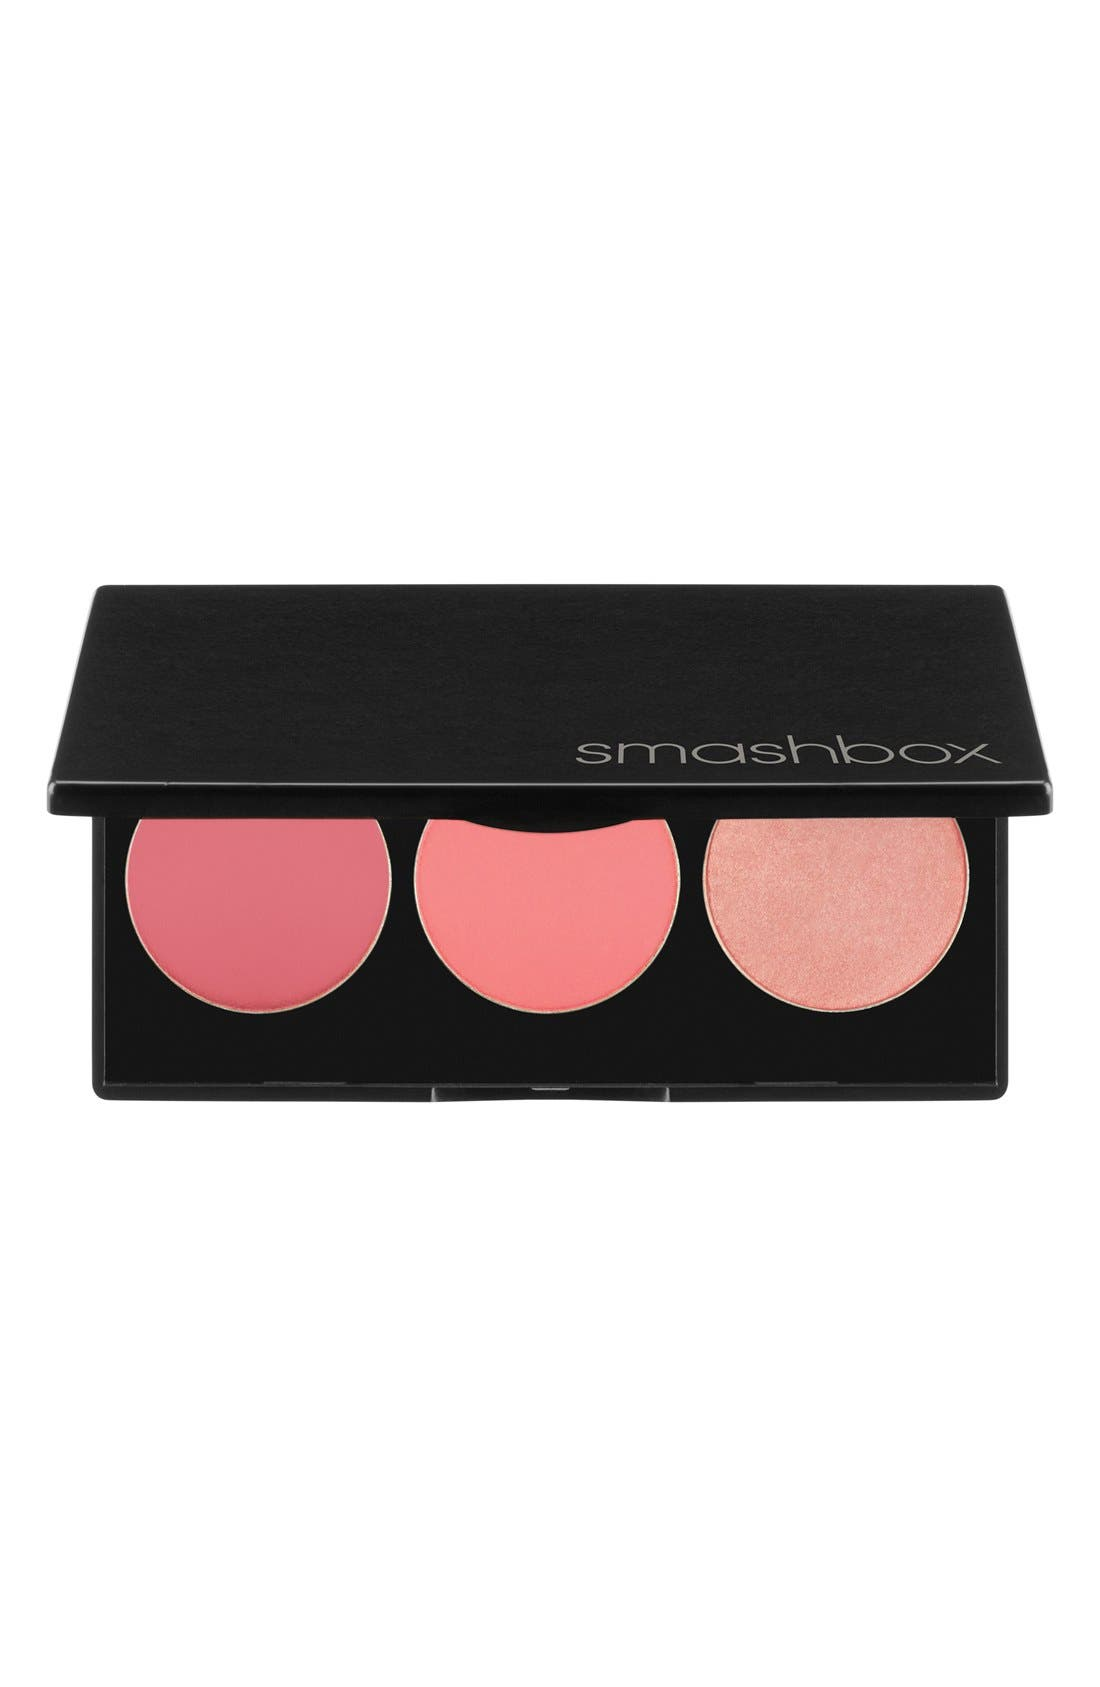 L.A. Lights Blush & Highlighter Palette,                         Main,                         color, PACIFIC COAST PINK